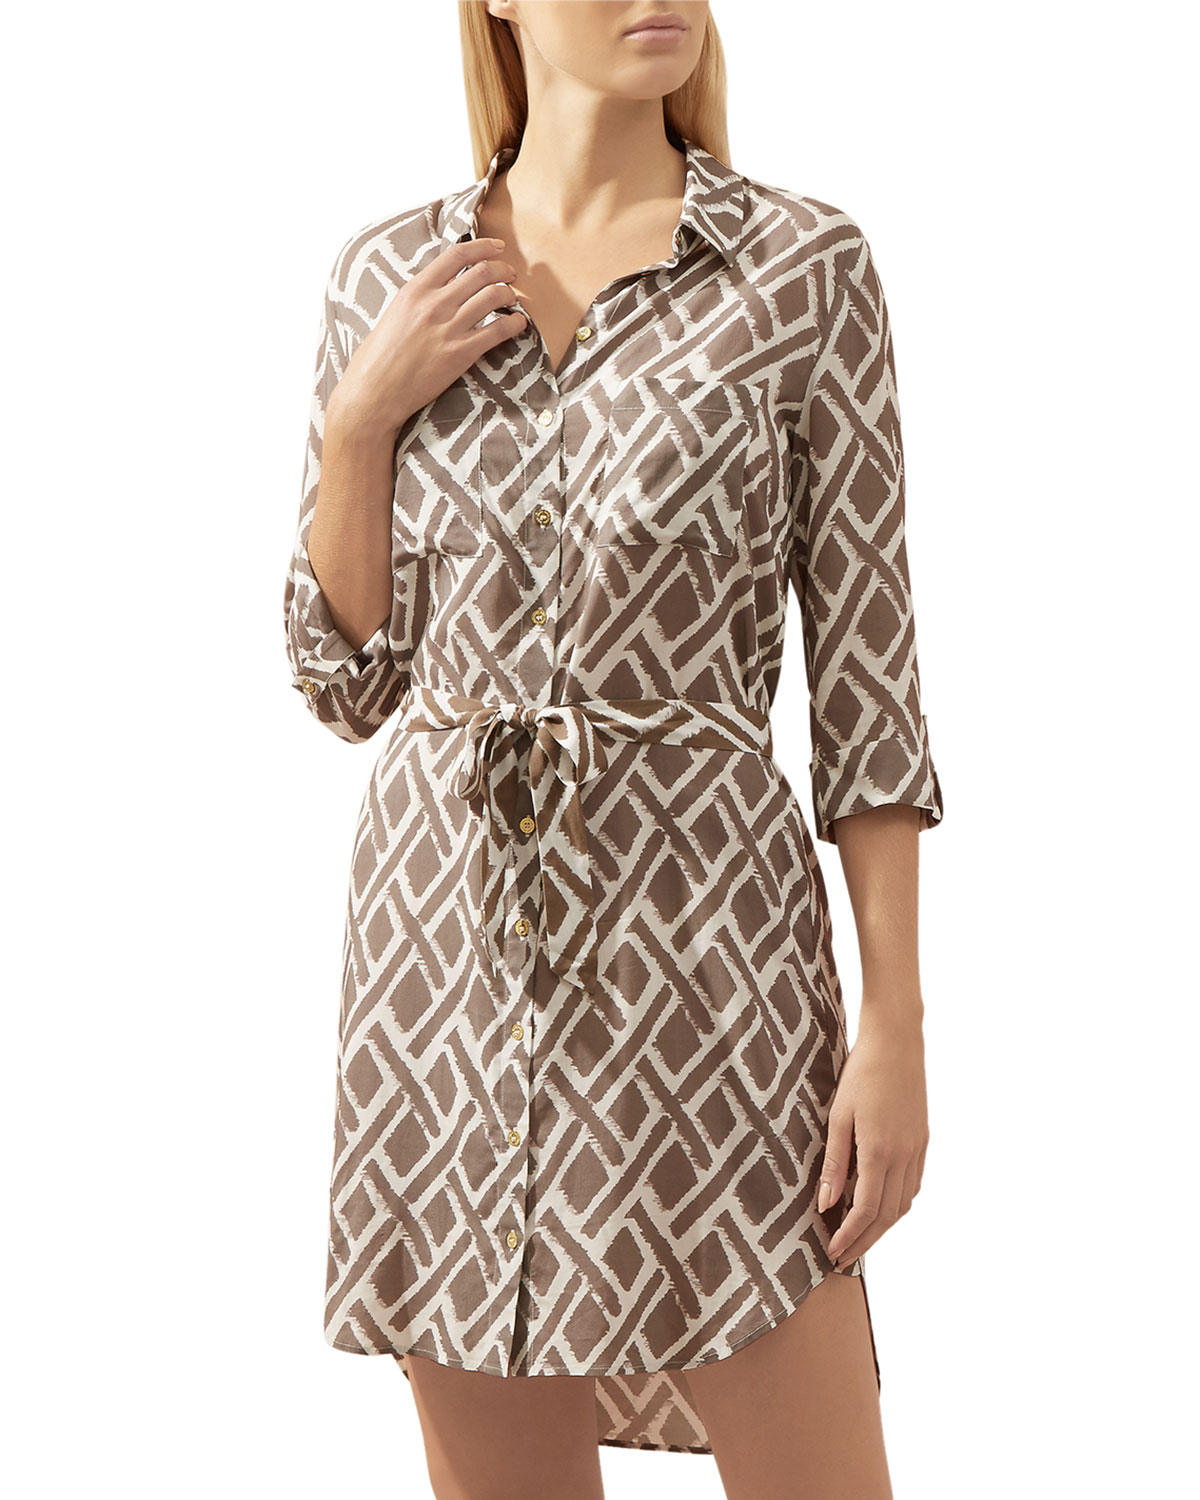 Cote D'Azur Relaxed Coverup Shirtdress in Multi